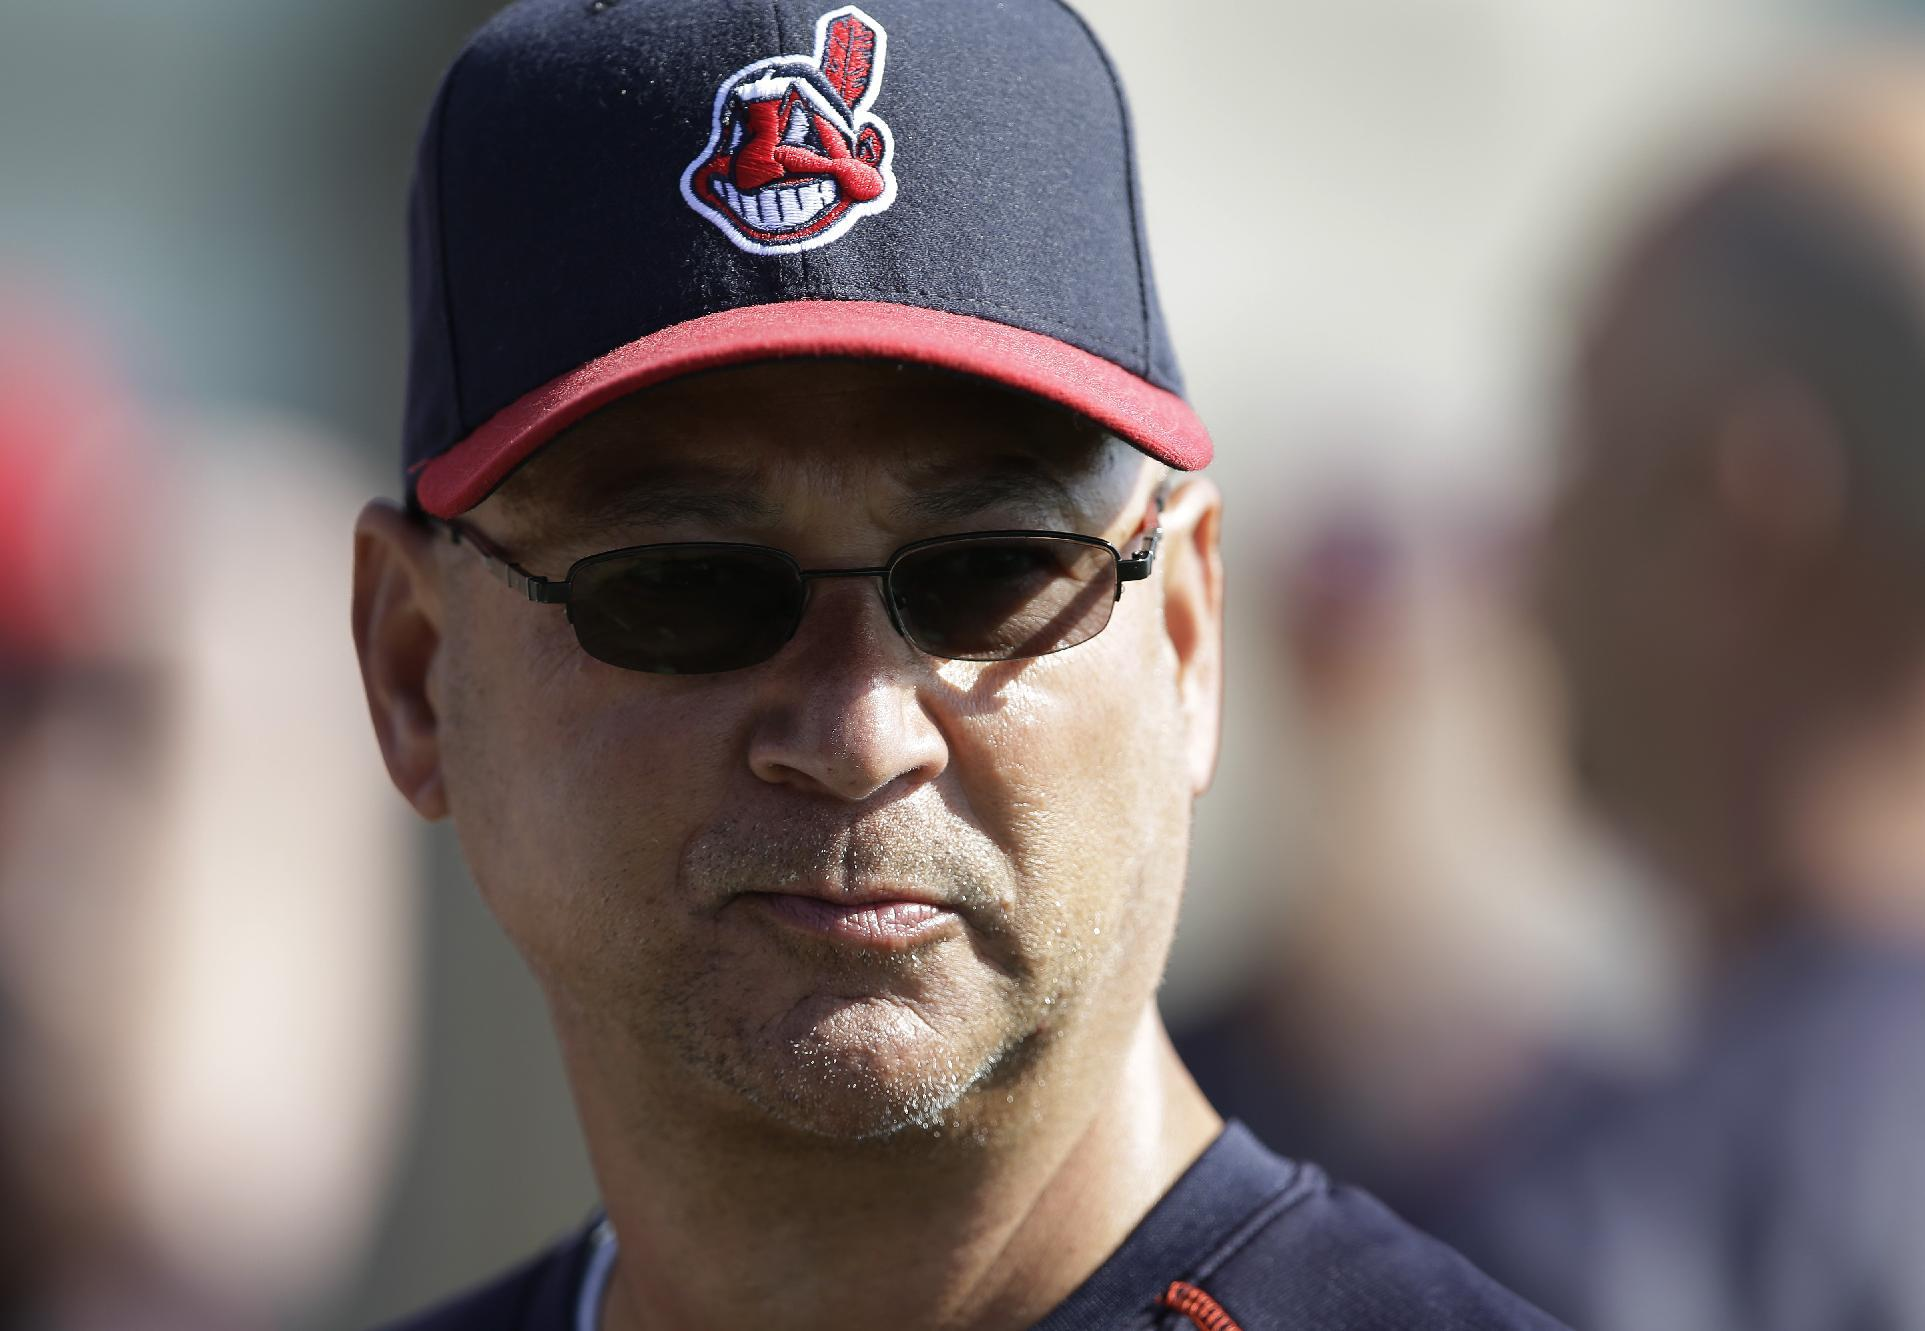 Motor mishap: Indians manager Francona's scooter wrecked